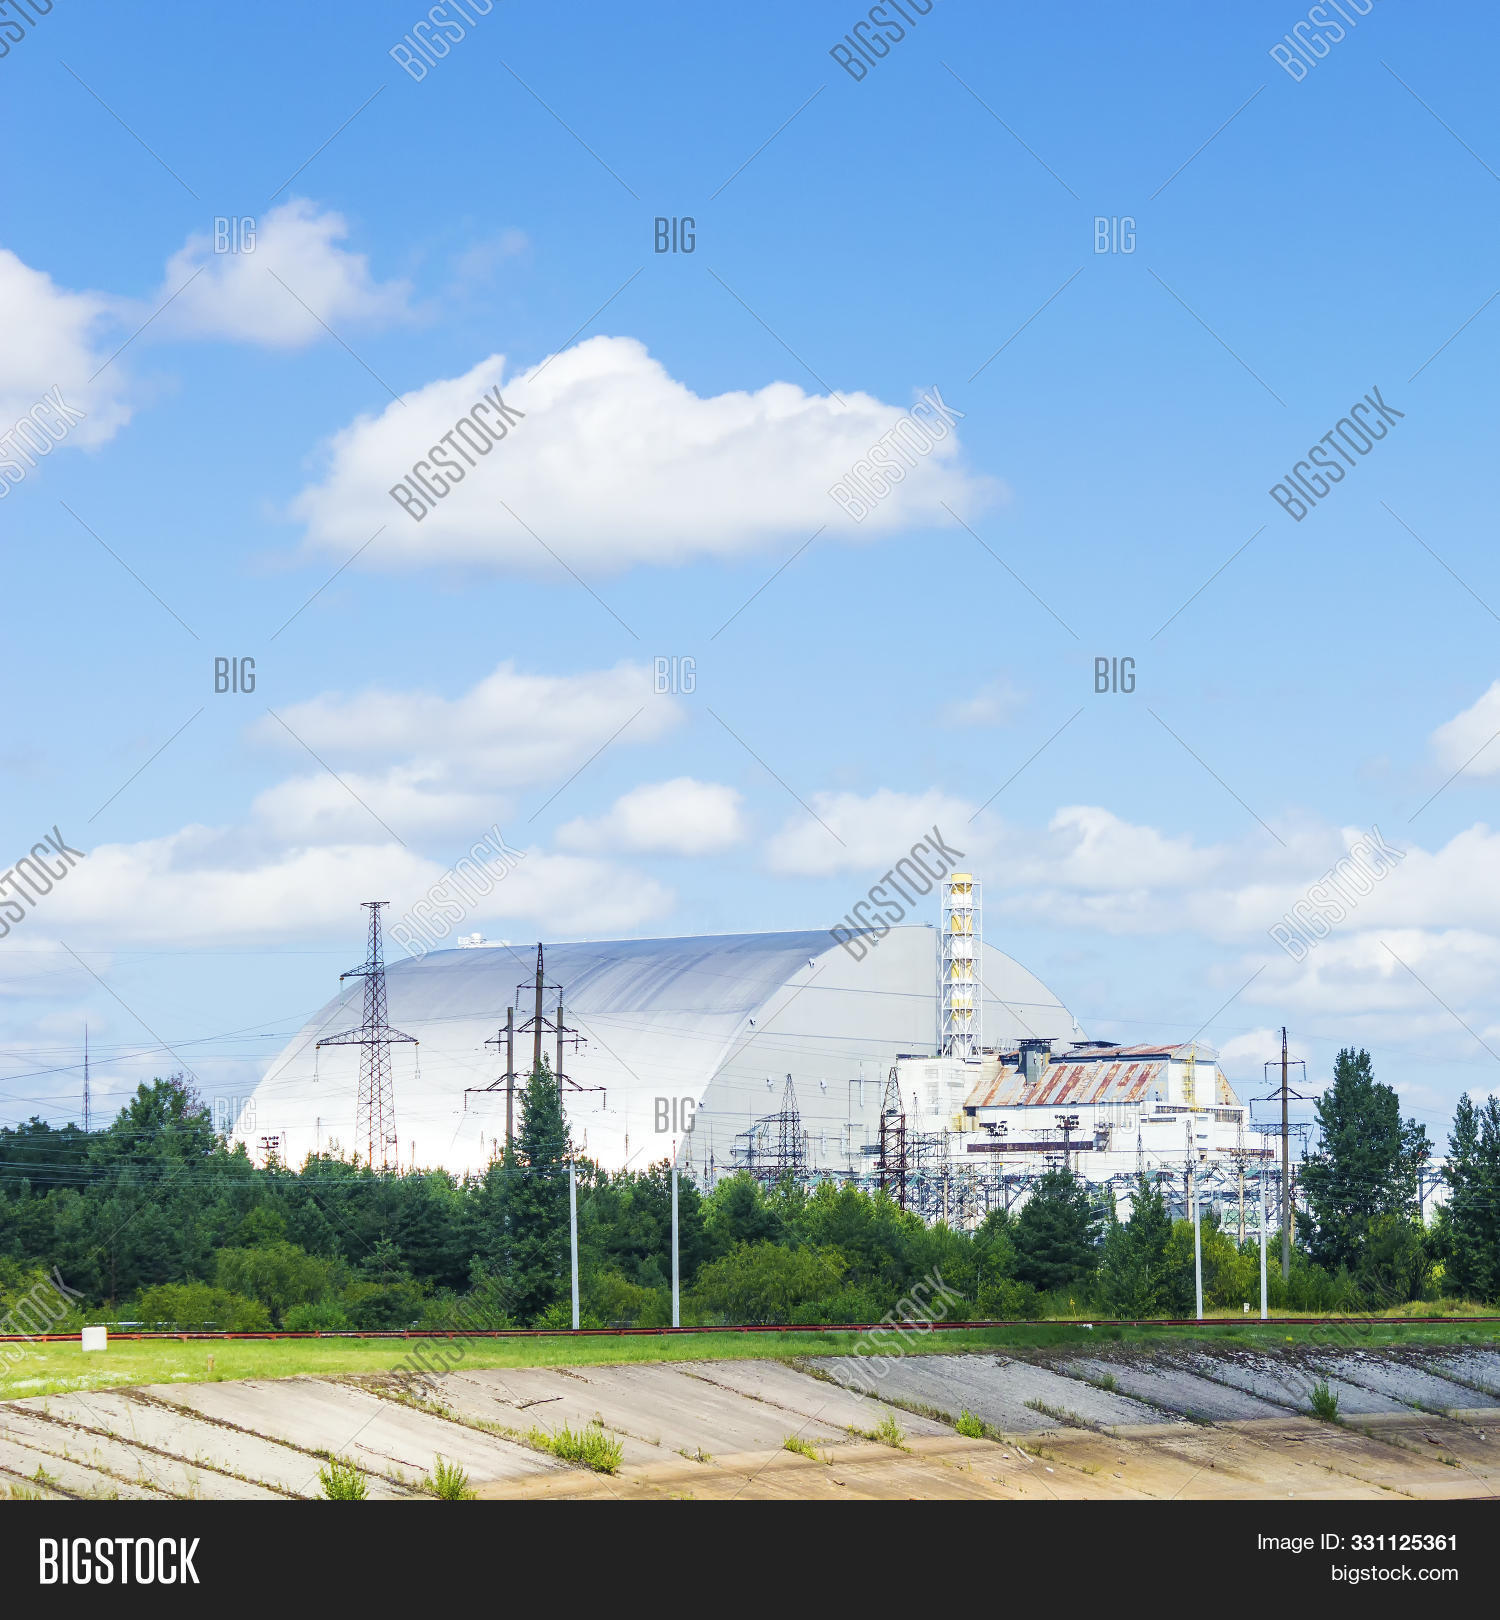 aerial,architecture,atomic,background,blue,building,chernobyl,city,confinement,construction,contamination,danger,design,disaster,ecology,electric,electricity,energy,environment,environmental,factory,hazard,industrial,industry,landscape,nature,nuclear,object,plant,pollution,power,radiation,radioactive,radioactivity,reactor,risk,sarcophagus,sky,station,symbol,technology,ukraine,view,zone